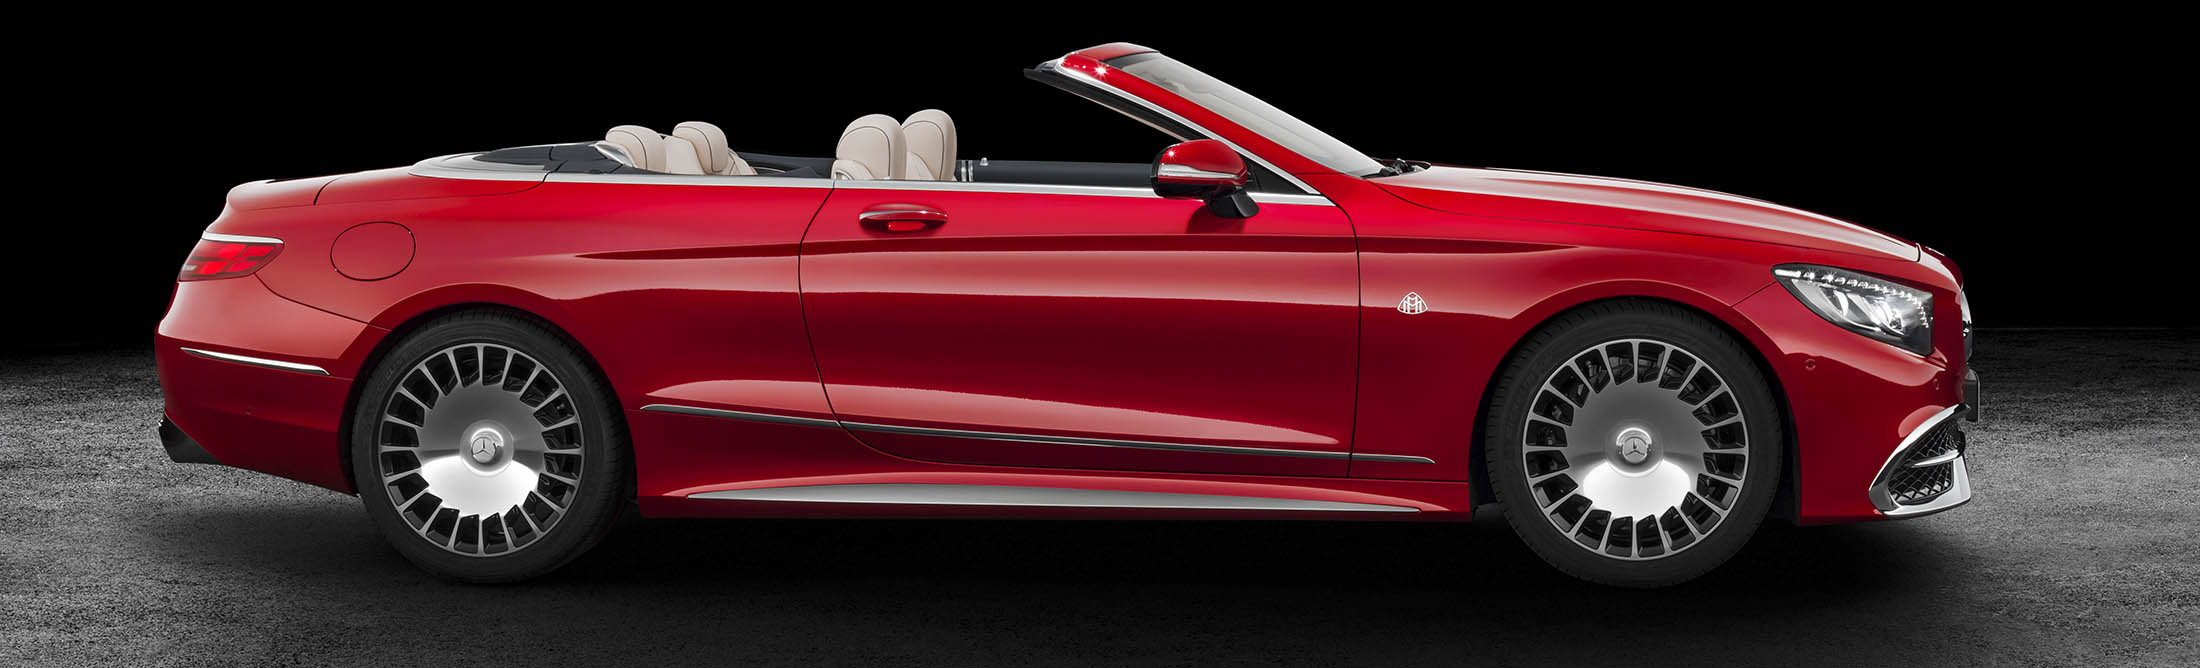 mercedes-maybach s650 cabriolet: all the specs, photos, price